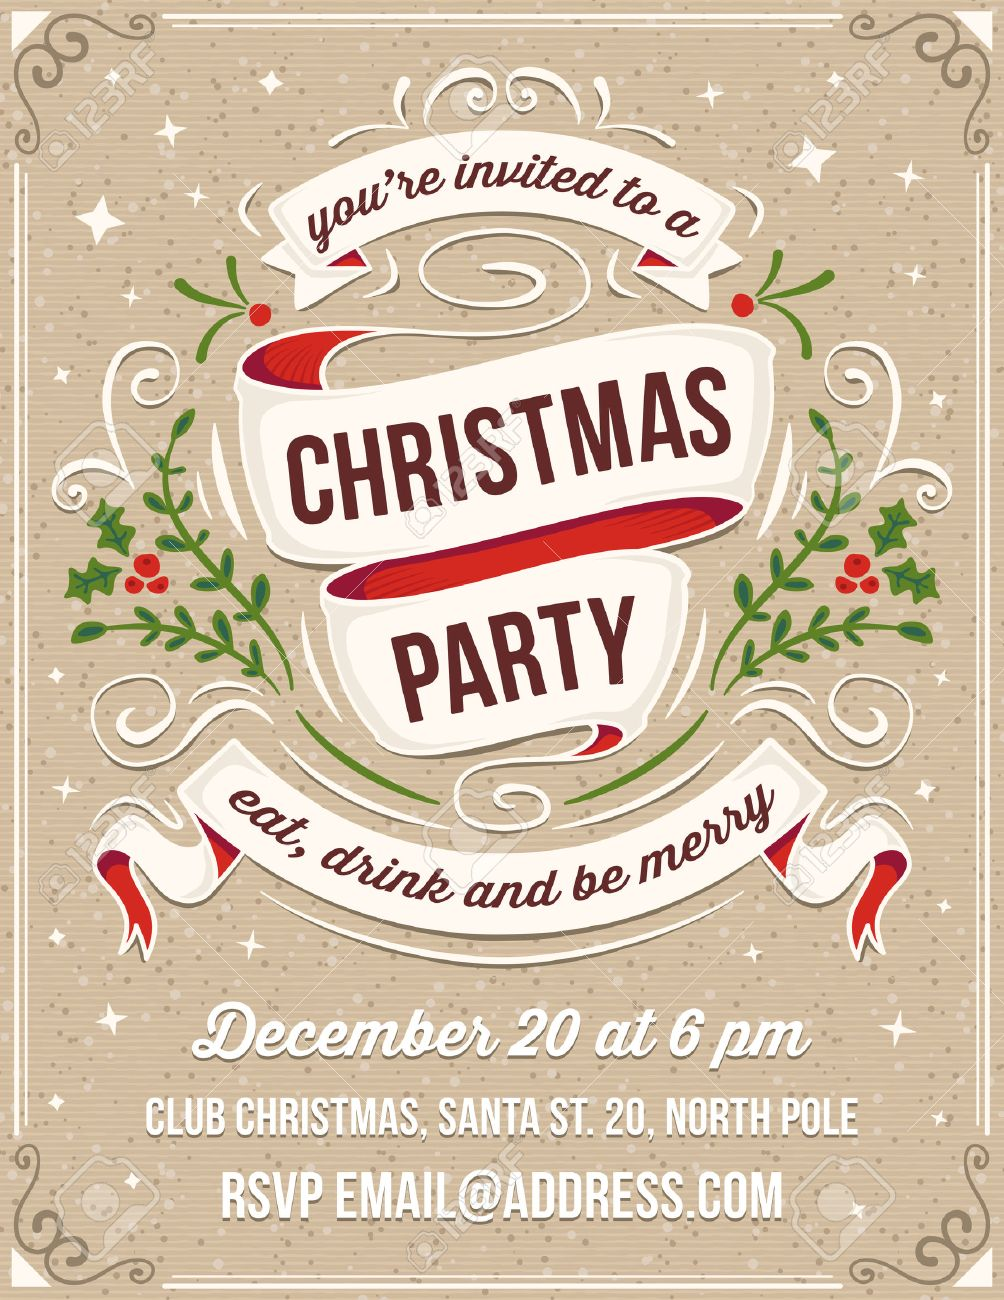 christmas holiday party images stock pictures royalty christmas holiday party hand drawn christmas party invitation only solid fills used no